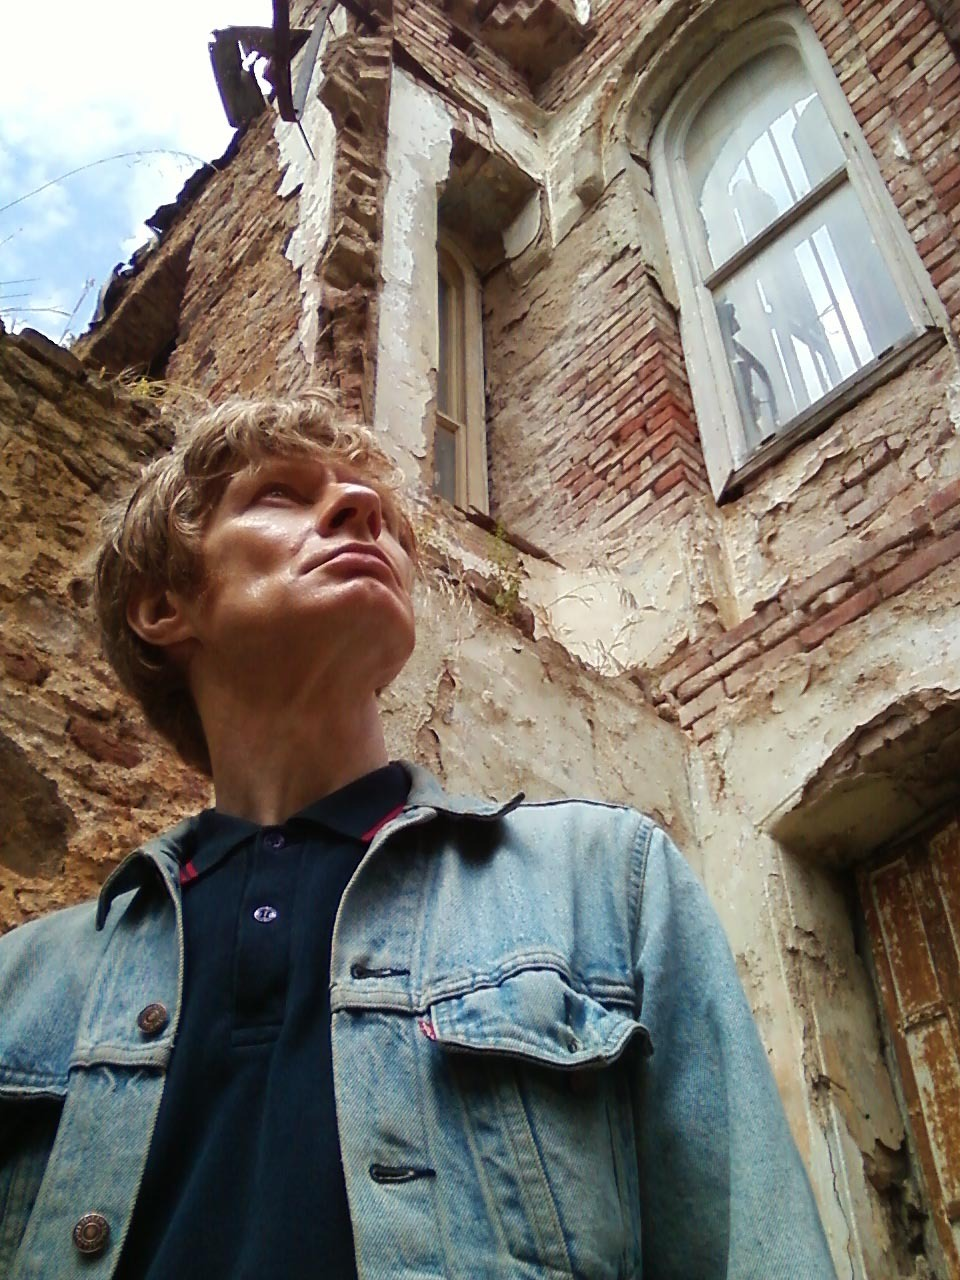 5/13/13 JG Thirlwell on the island of ‪Büyükada‬ in Turkey, at the ruins of the house where Trotsky stayed for a year before he escaped to Mexico (where he was ultimately ice-picked). Photo by Tod A.